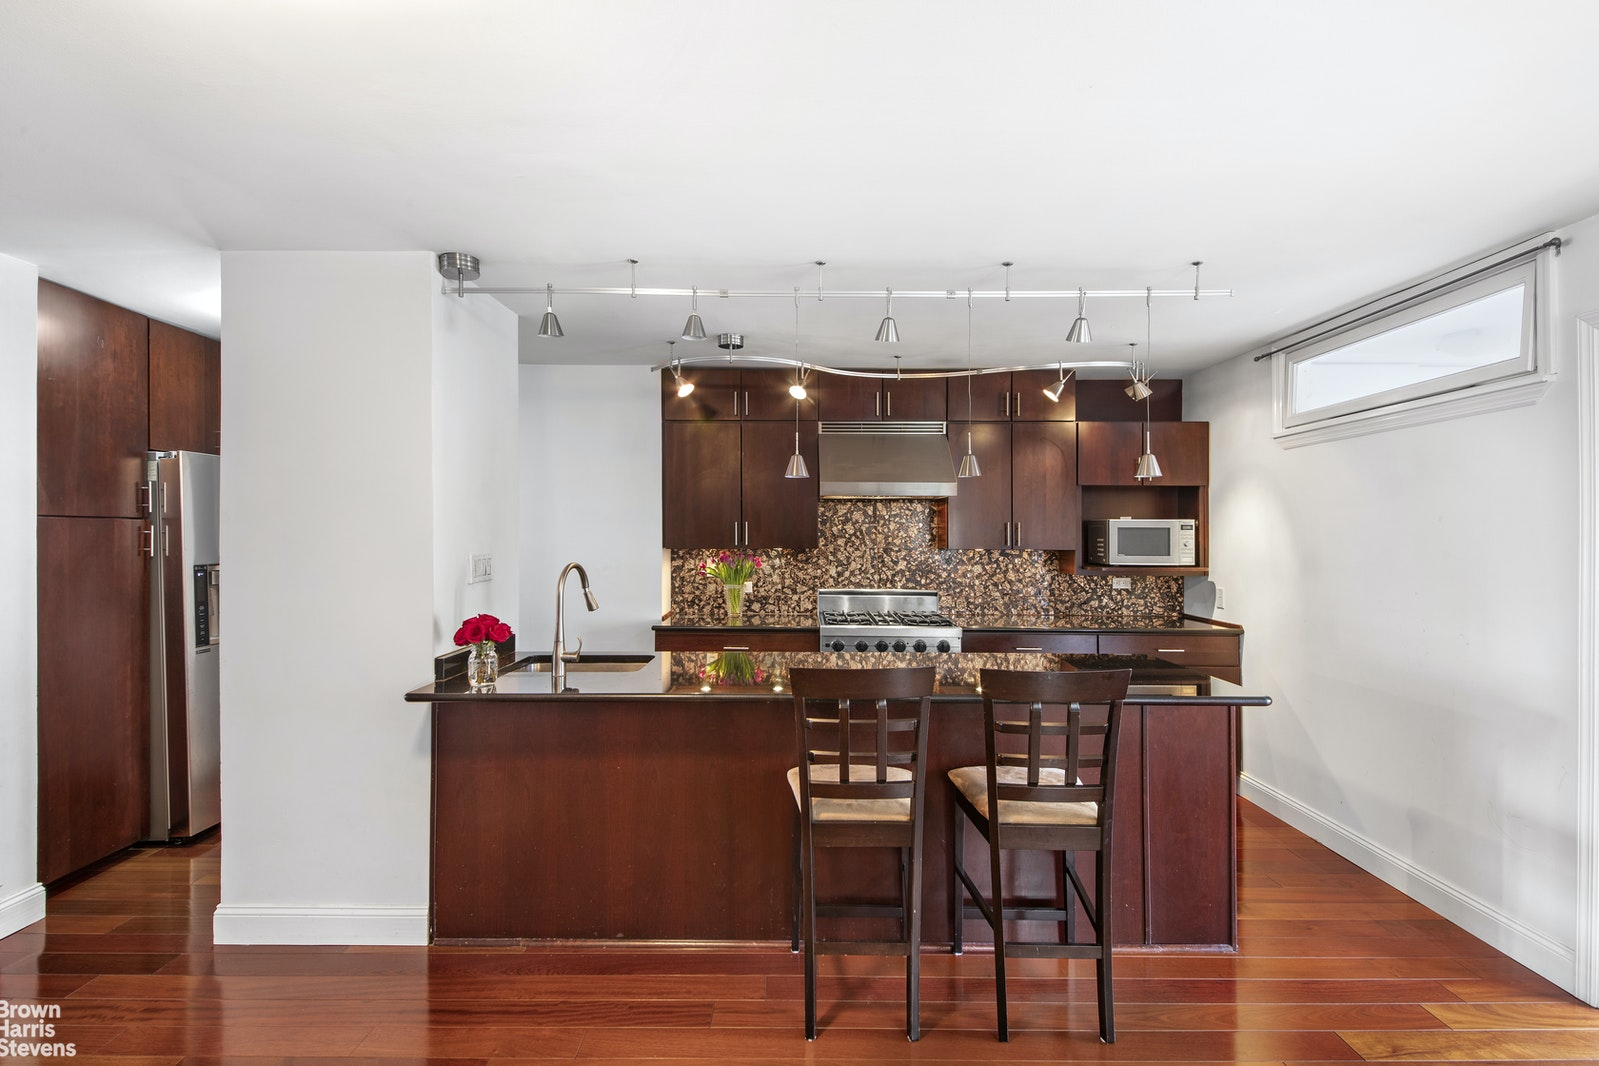 251 East 32nd Street 9bc, Murray Hill Kips Bay, NYC, 10016, $1,599,000, Property For Sale, Halstead Real Estate, Photo 3